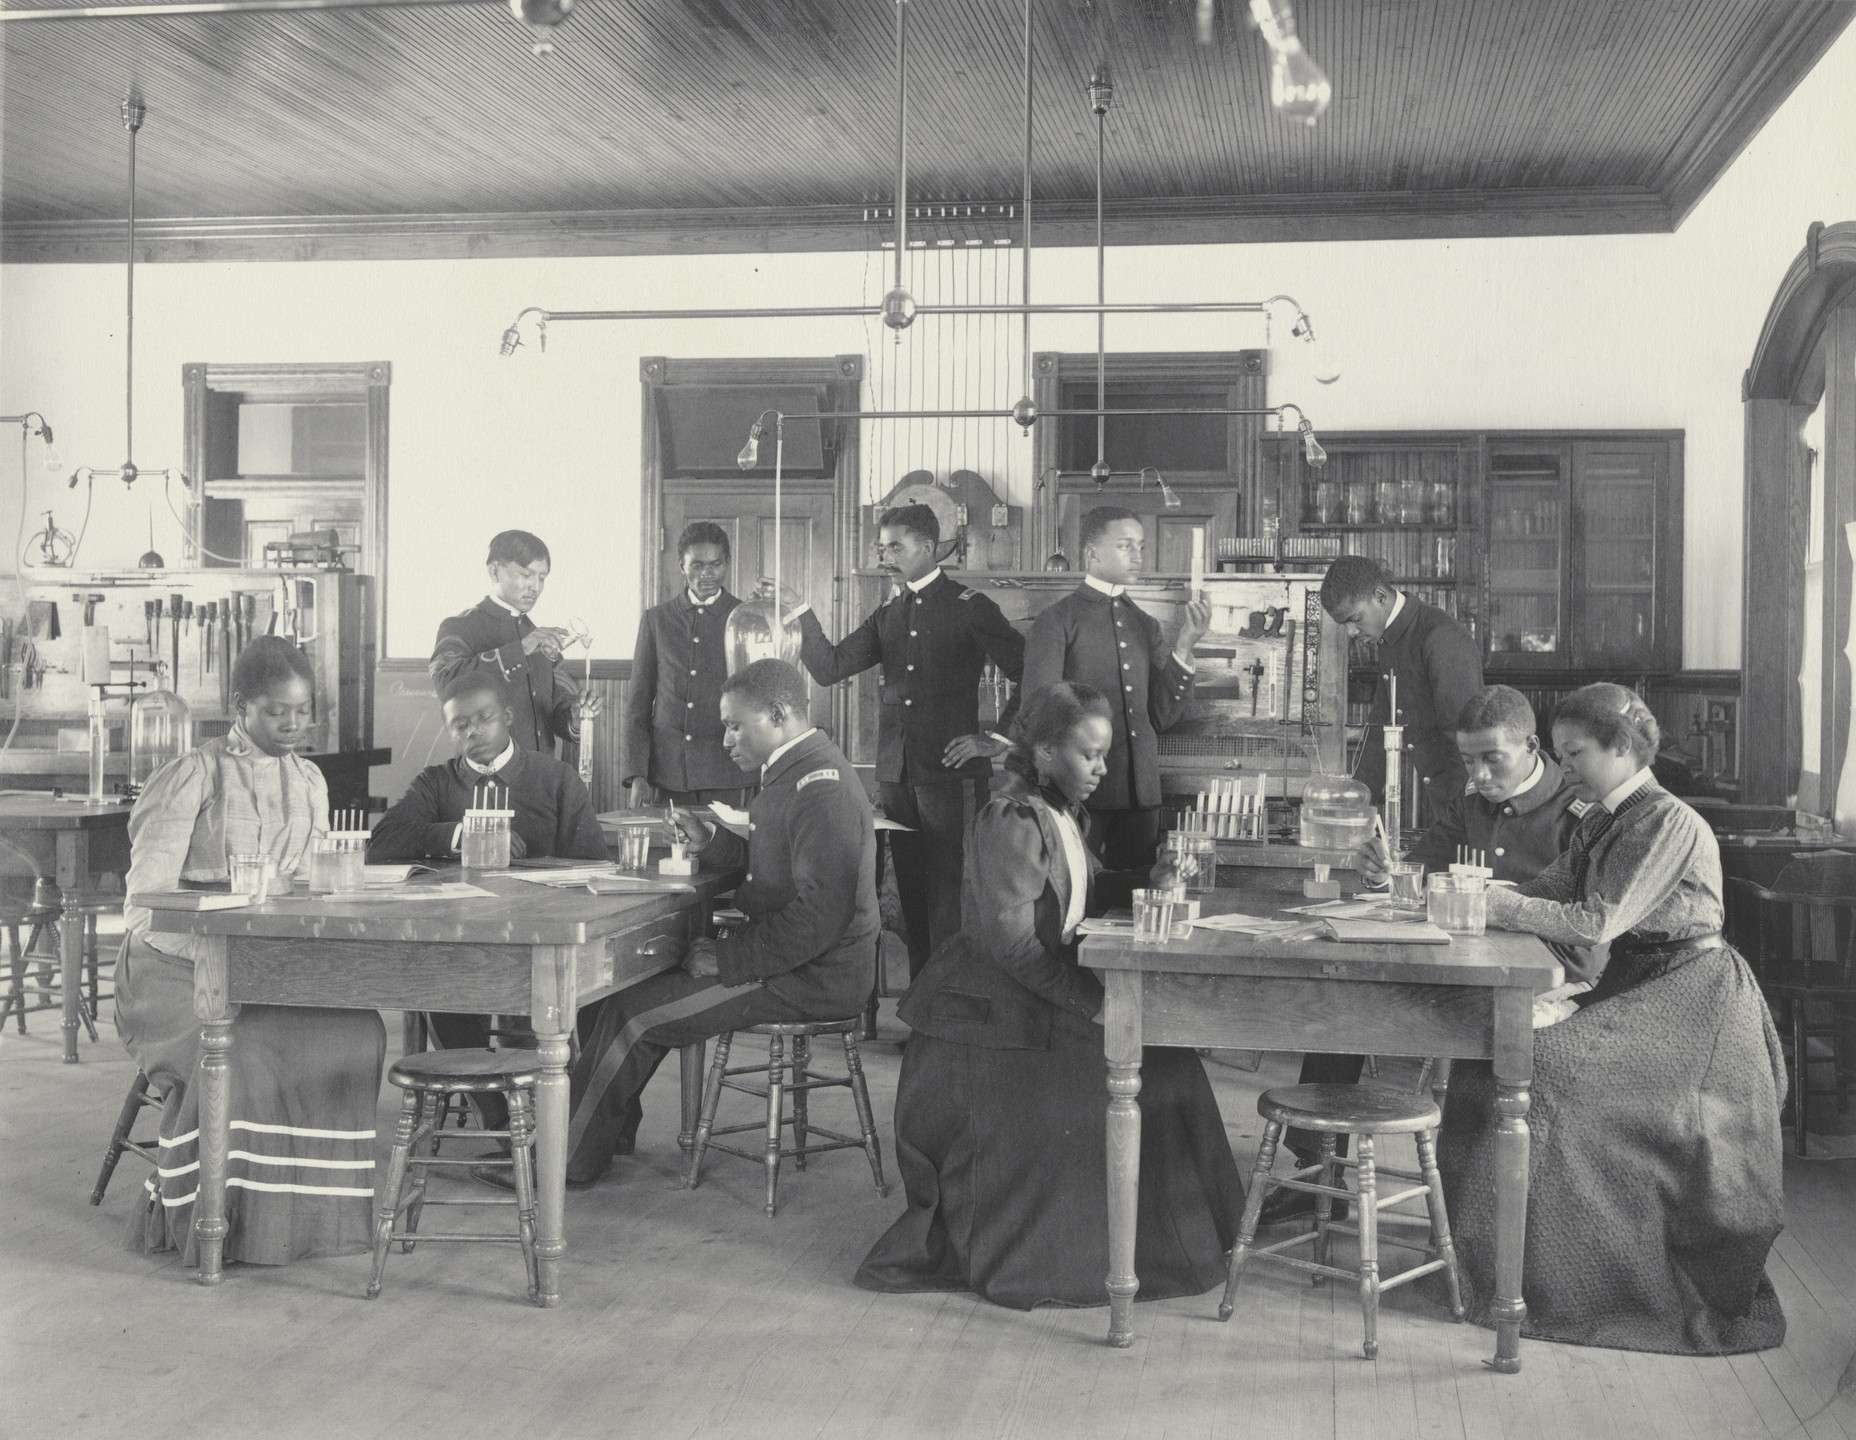 Frances Benjamin Johnston. Physics. Seniors studying osmose. 1899-1900